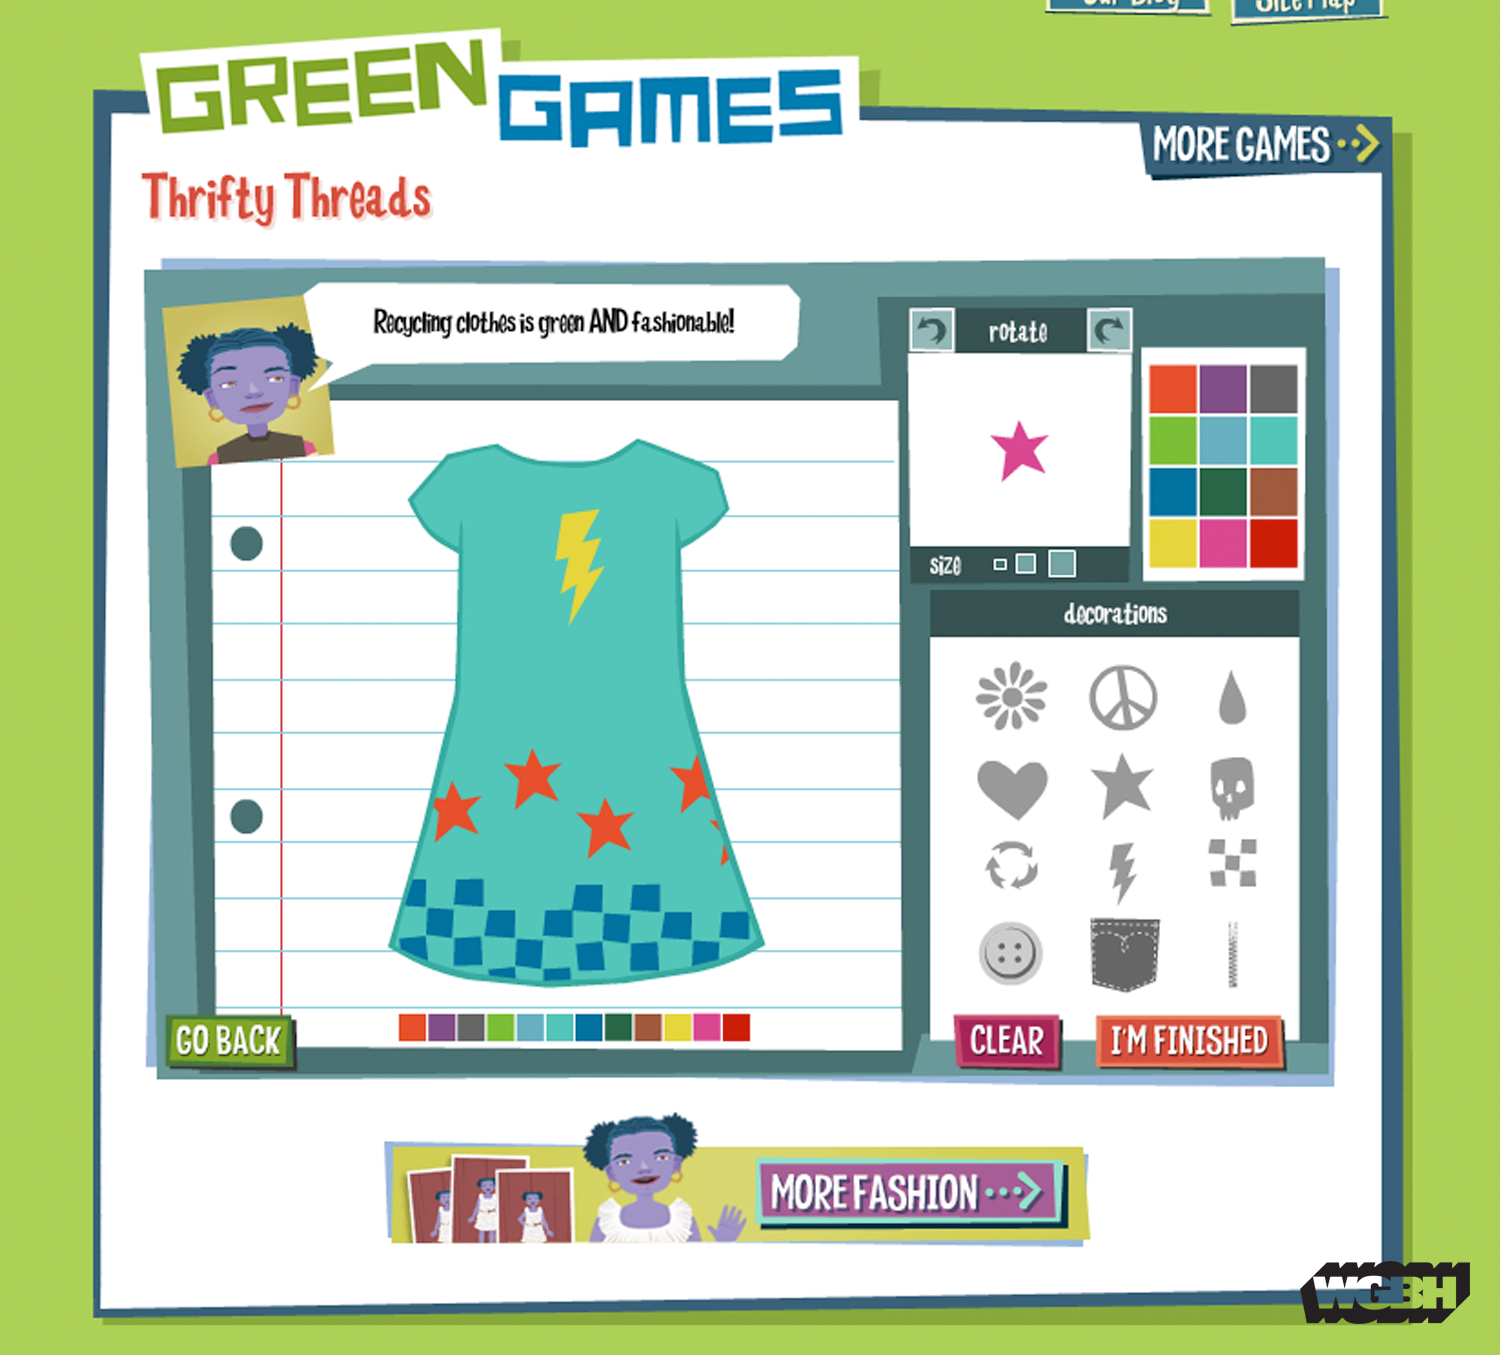 greens_games_thriftythreads2.png